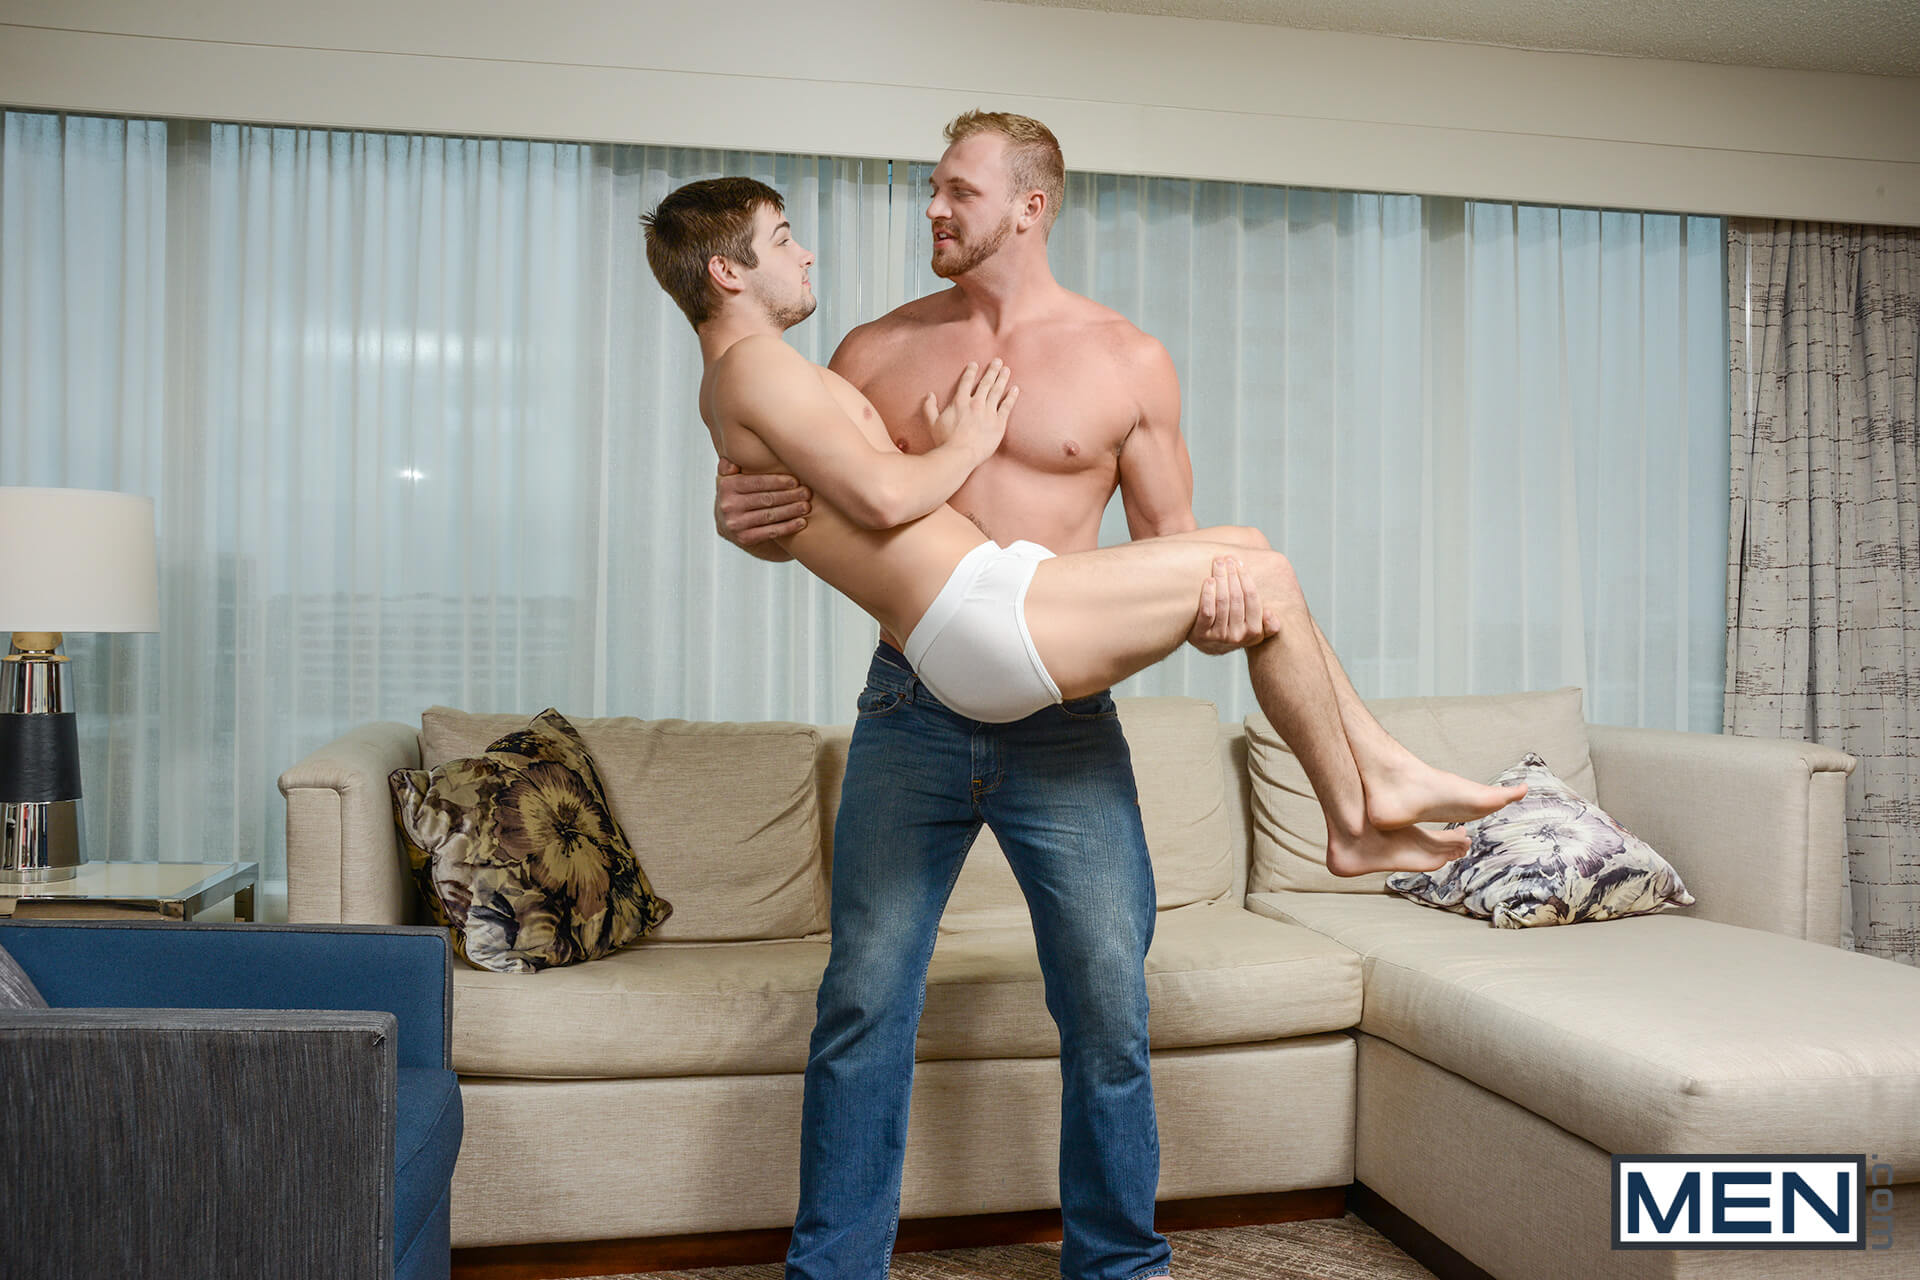 MEN.COM » Drill My Hole » Johnny And The Giant » Johnny Rapid » Josh ...